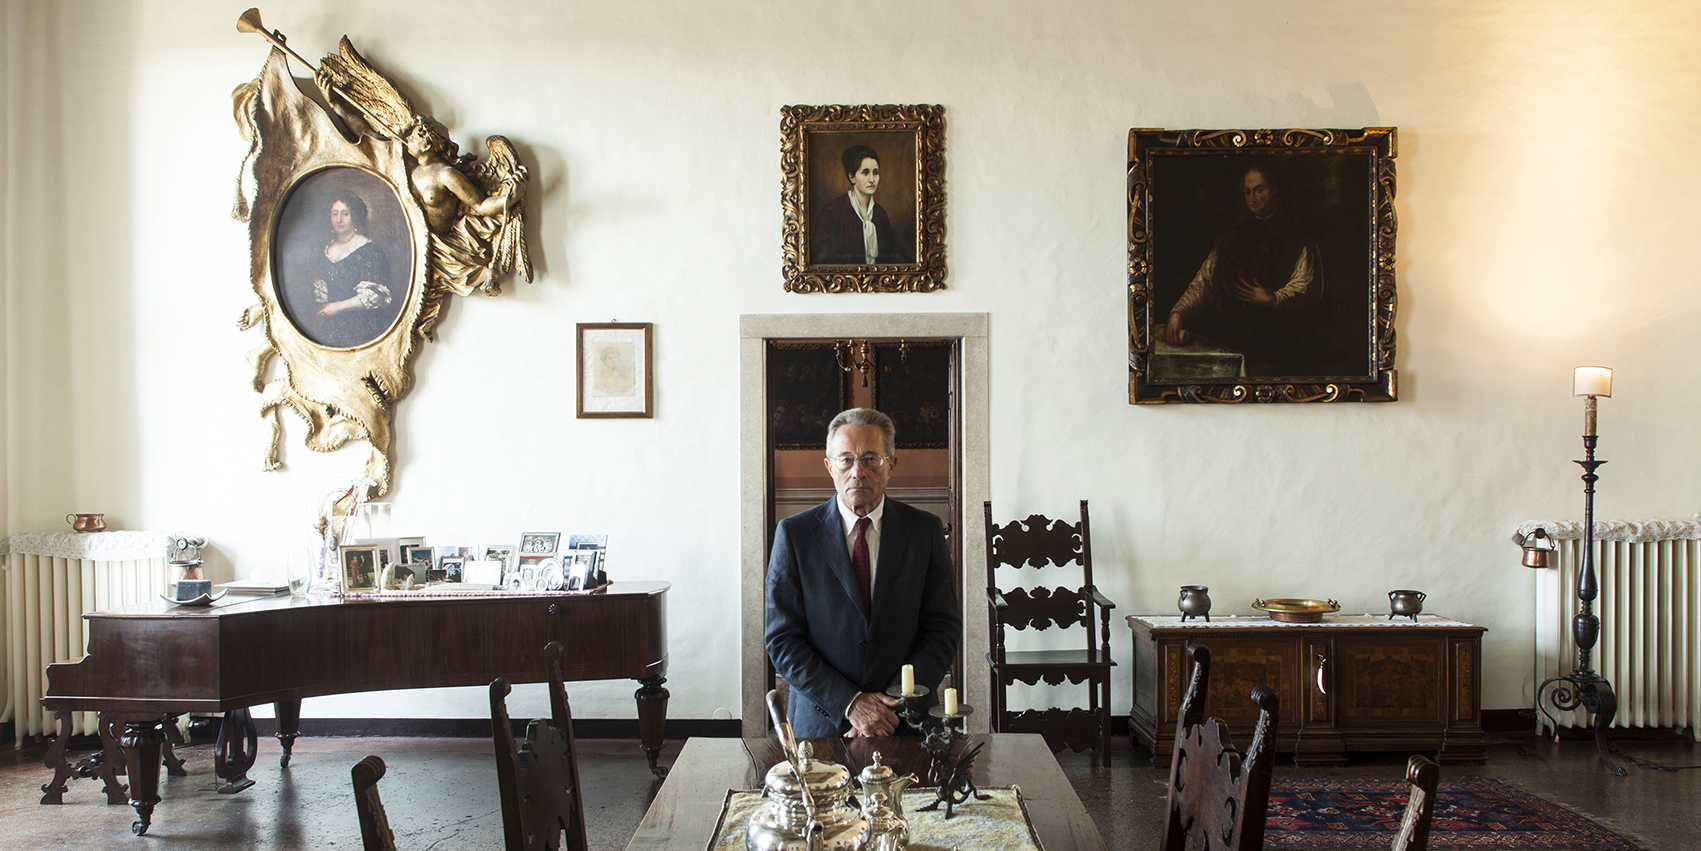 Interior of Villa Pisani, portrait of the owner.